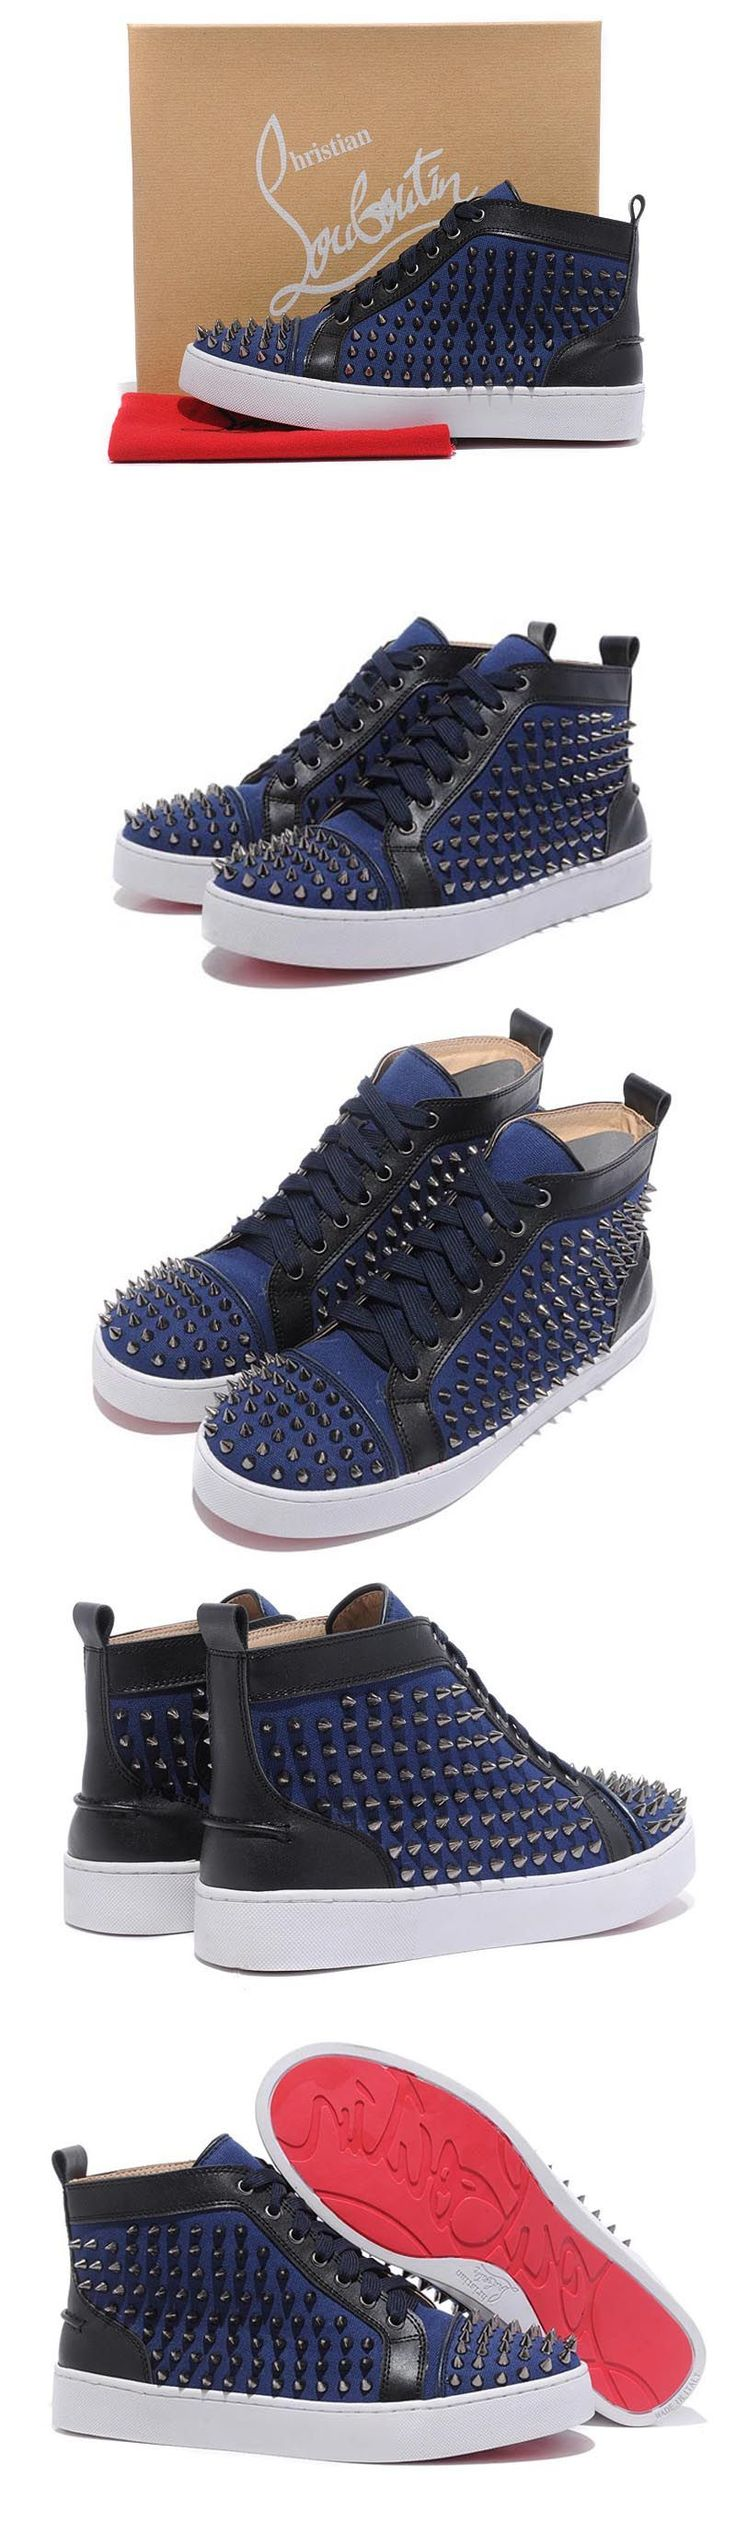 Blue Christian Louboutin Men's Louis Studded Hi-Top Sneakers